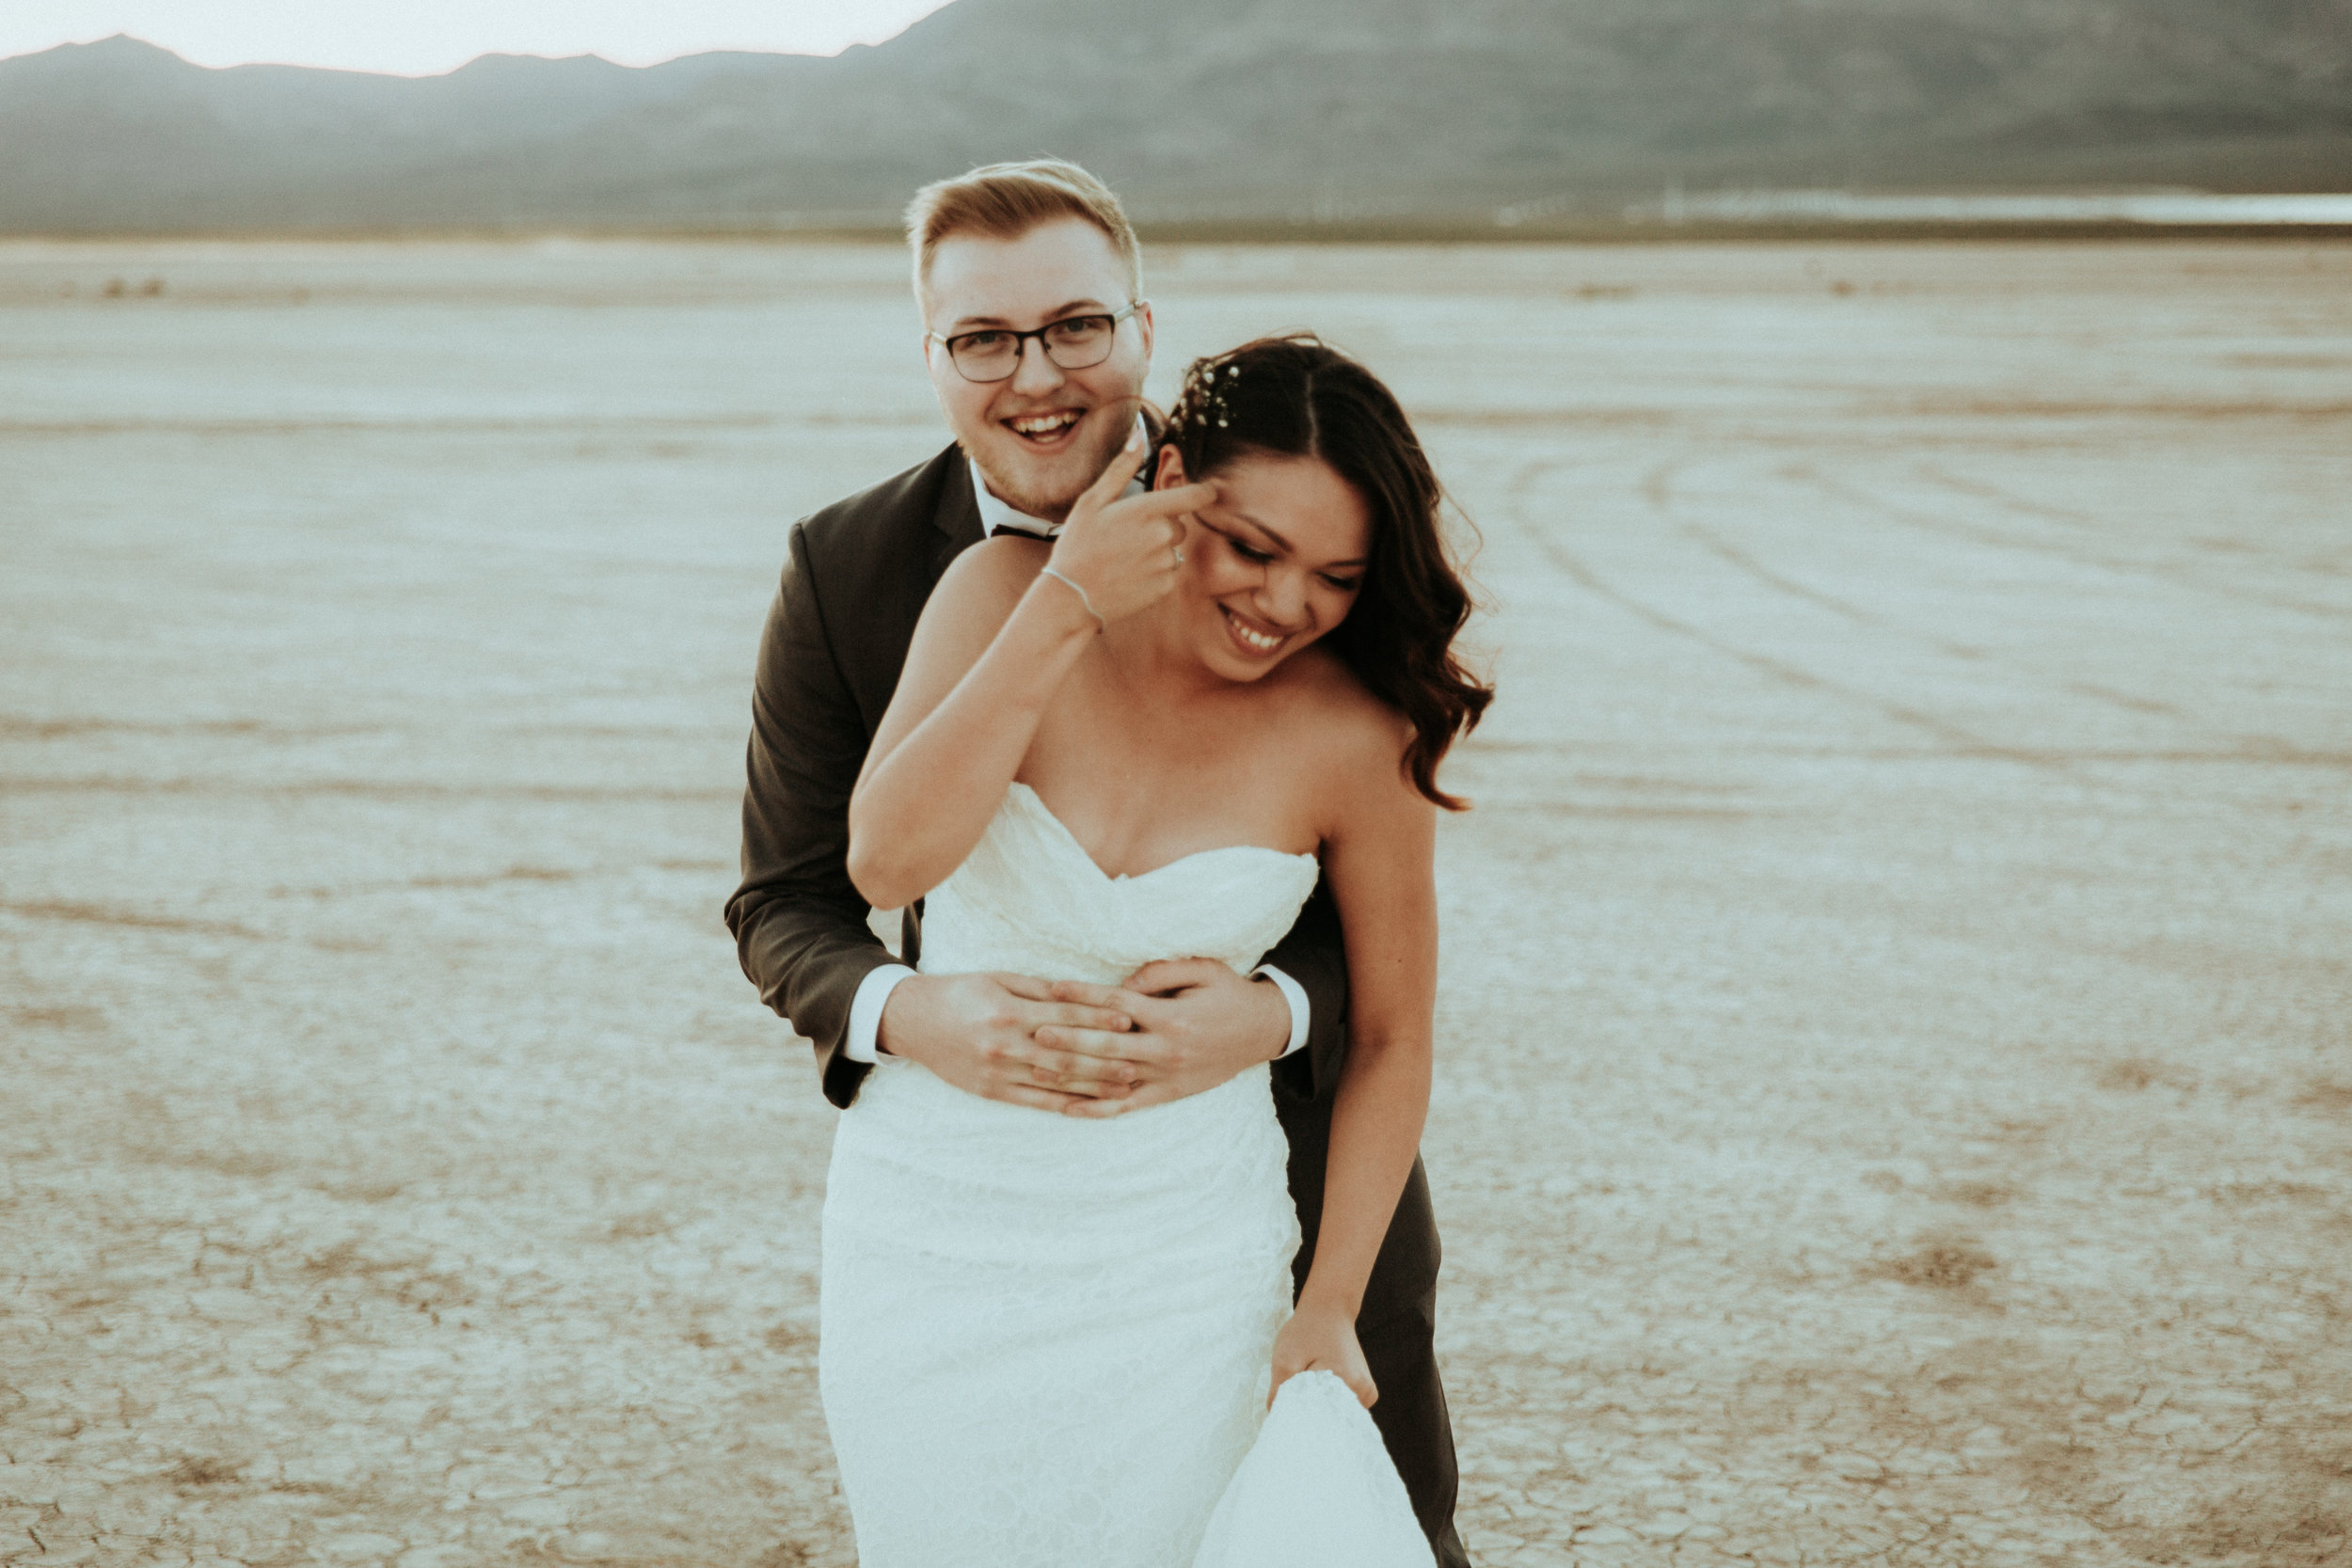 Las Vegas Wedding Photographer - Henderson, NV - Seattle Wedding Photographer - PNW Wedding Photographer - Kamra Fuller Photography - First Look - Portrait Session - Unposed Field Guide